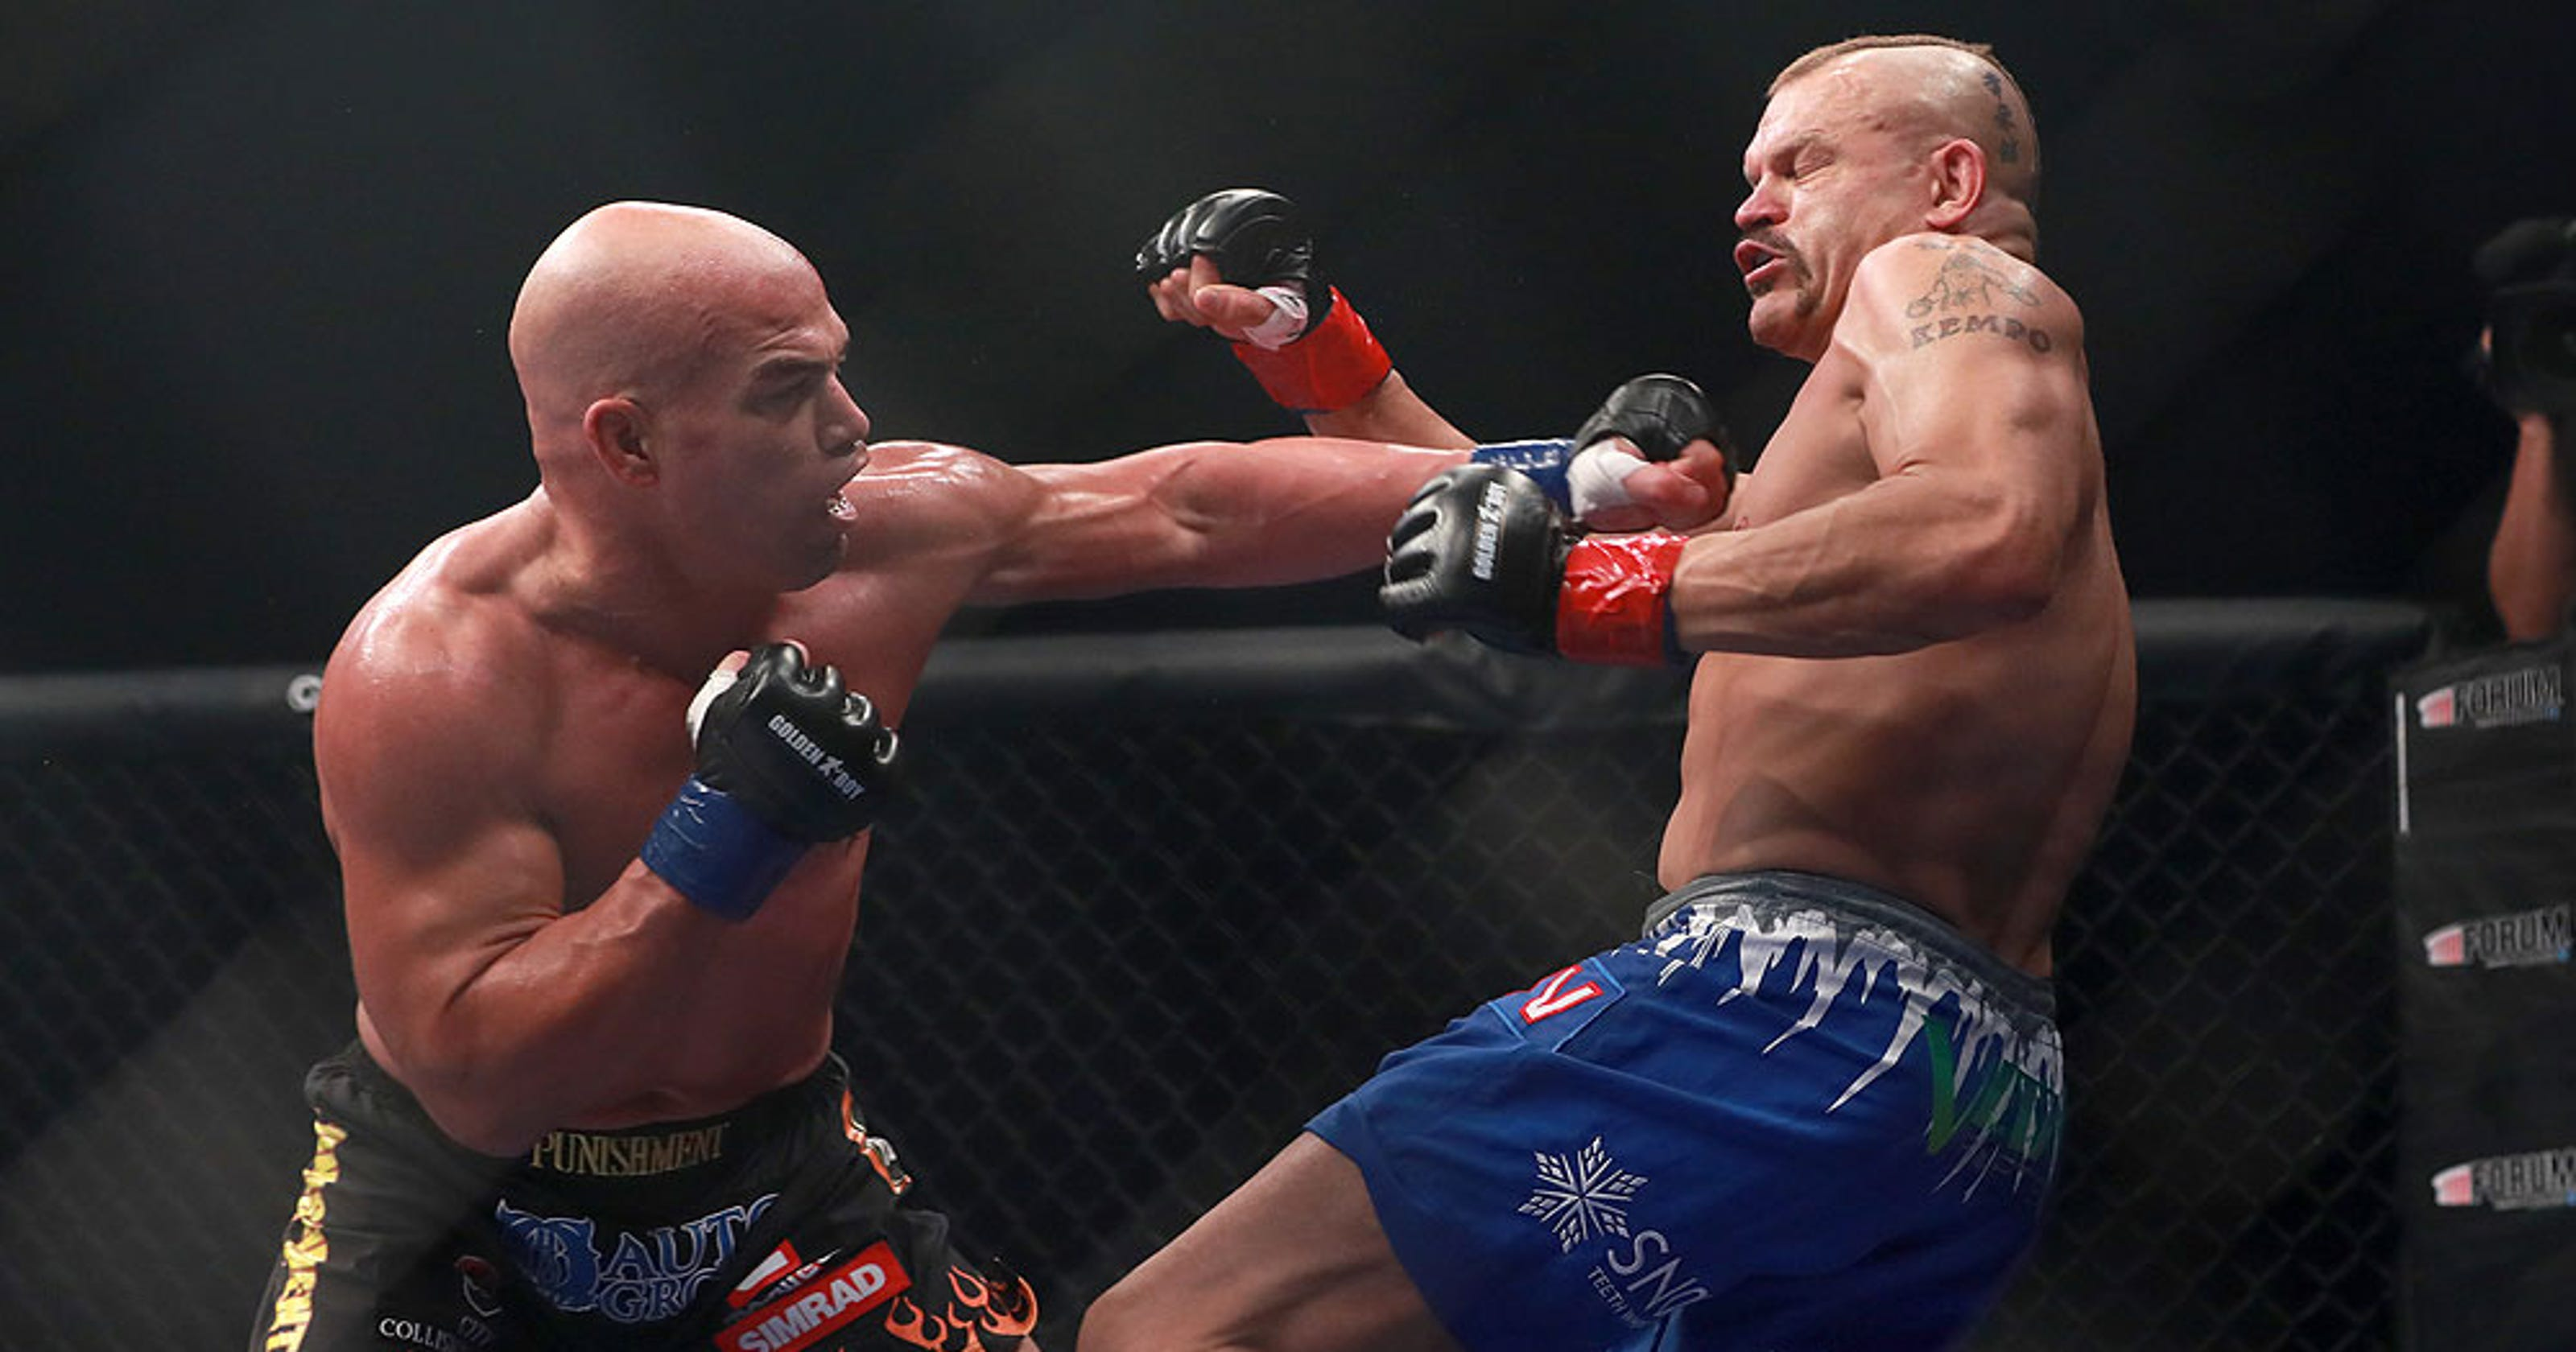 034625b0847f63 Tito Ortiz gets revenge on Chuck Liddell with vicious knockout